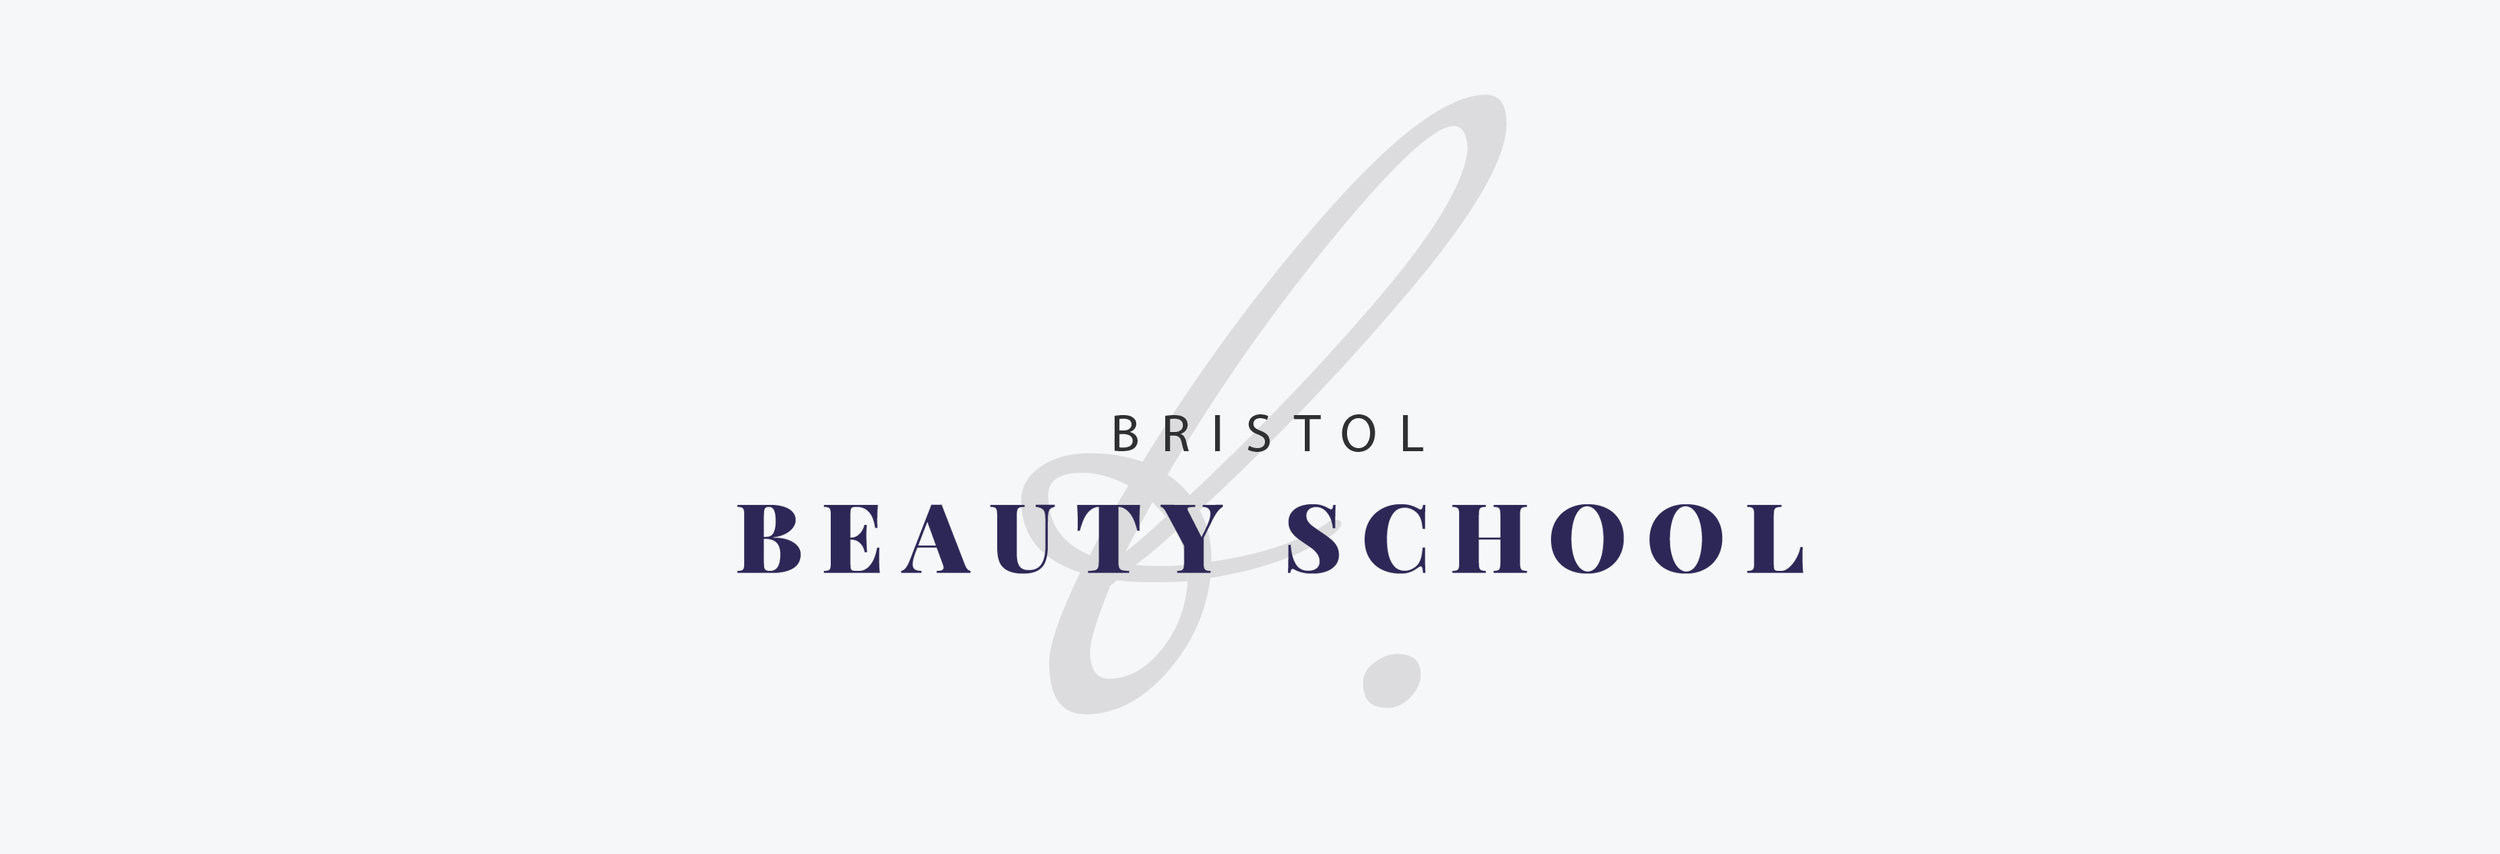 brand-photography-bristol